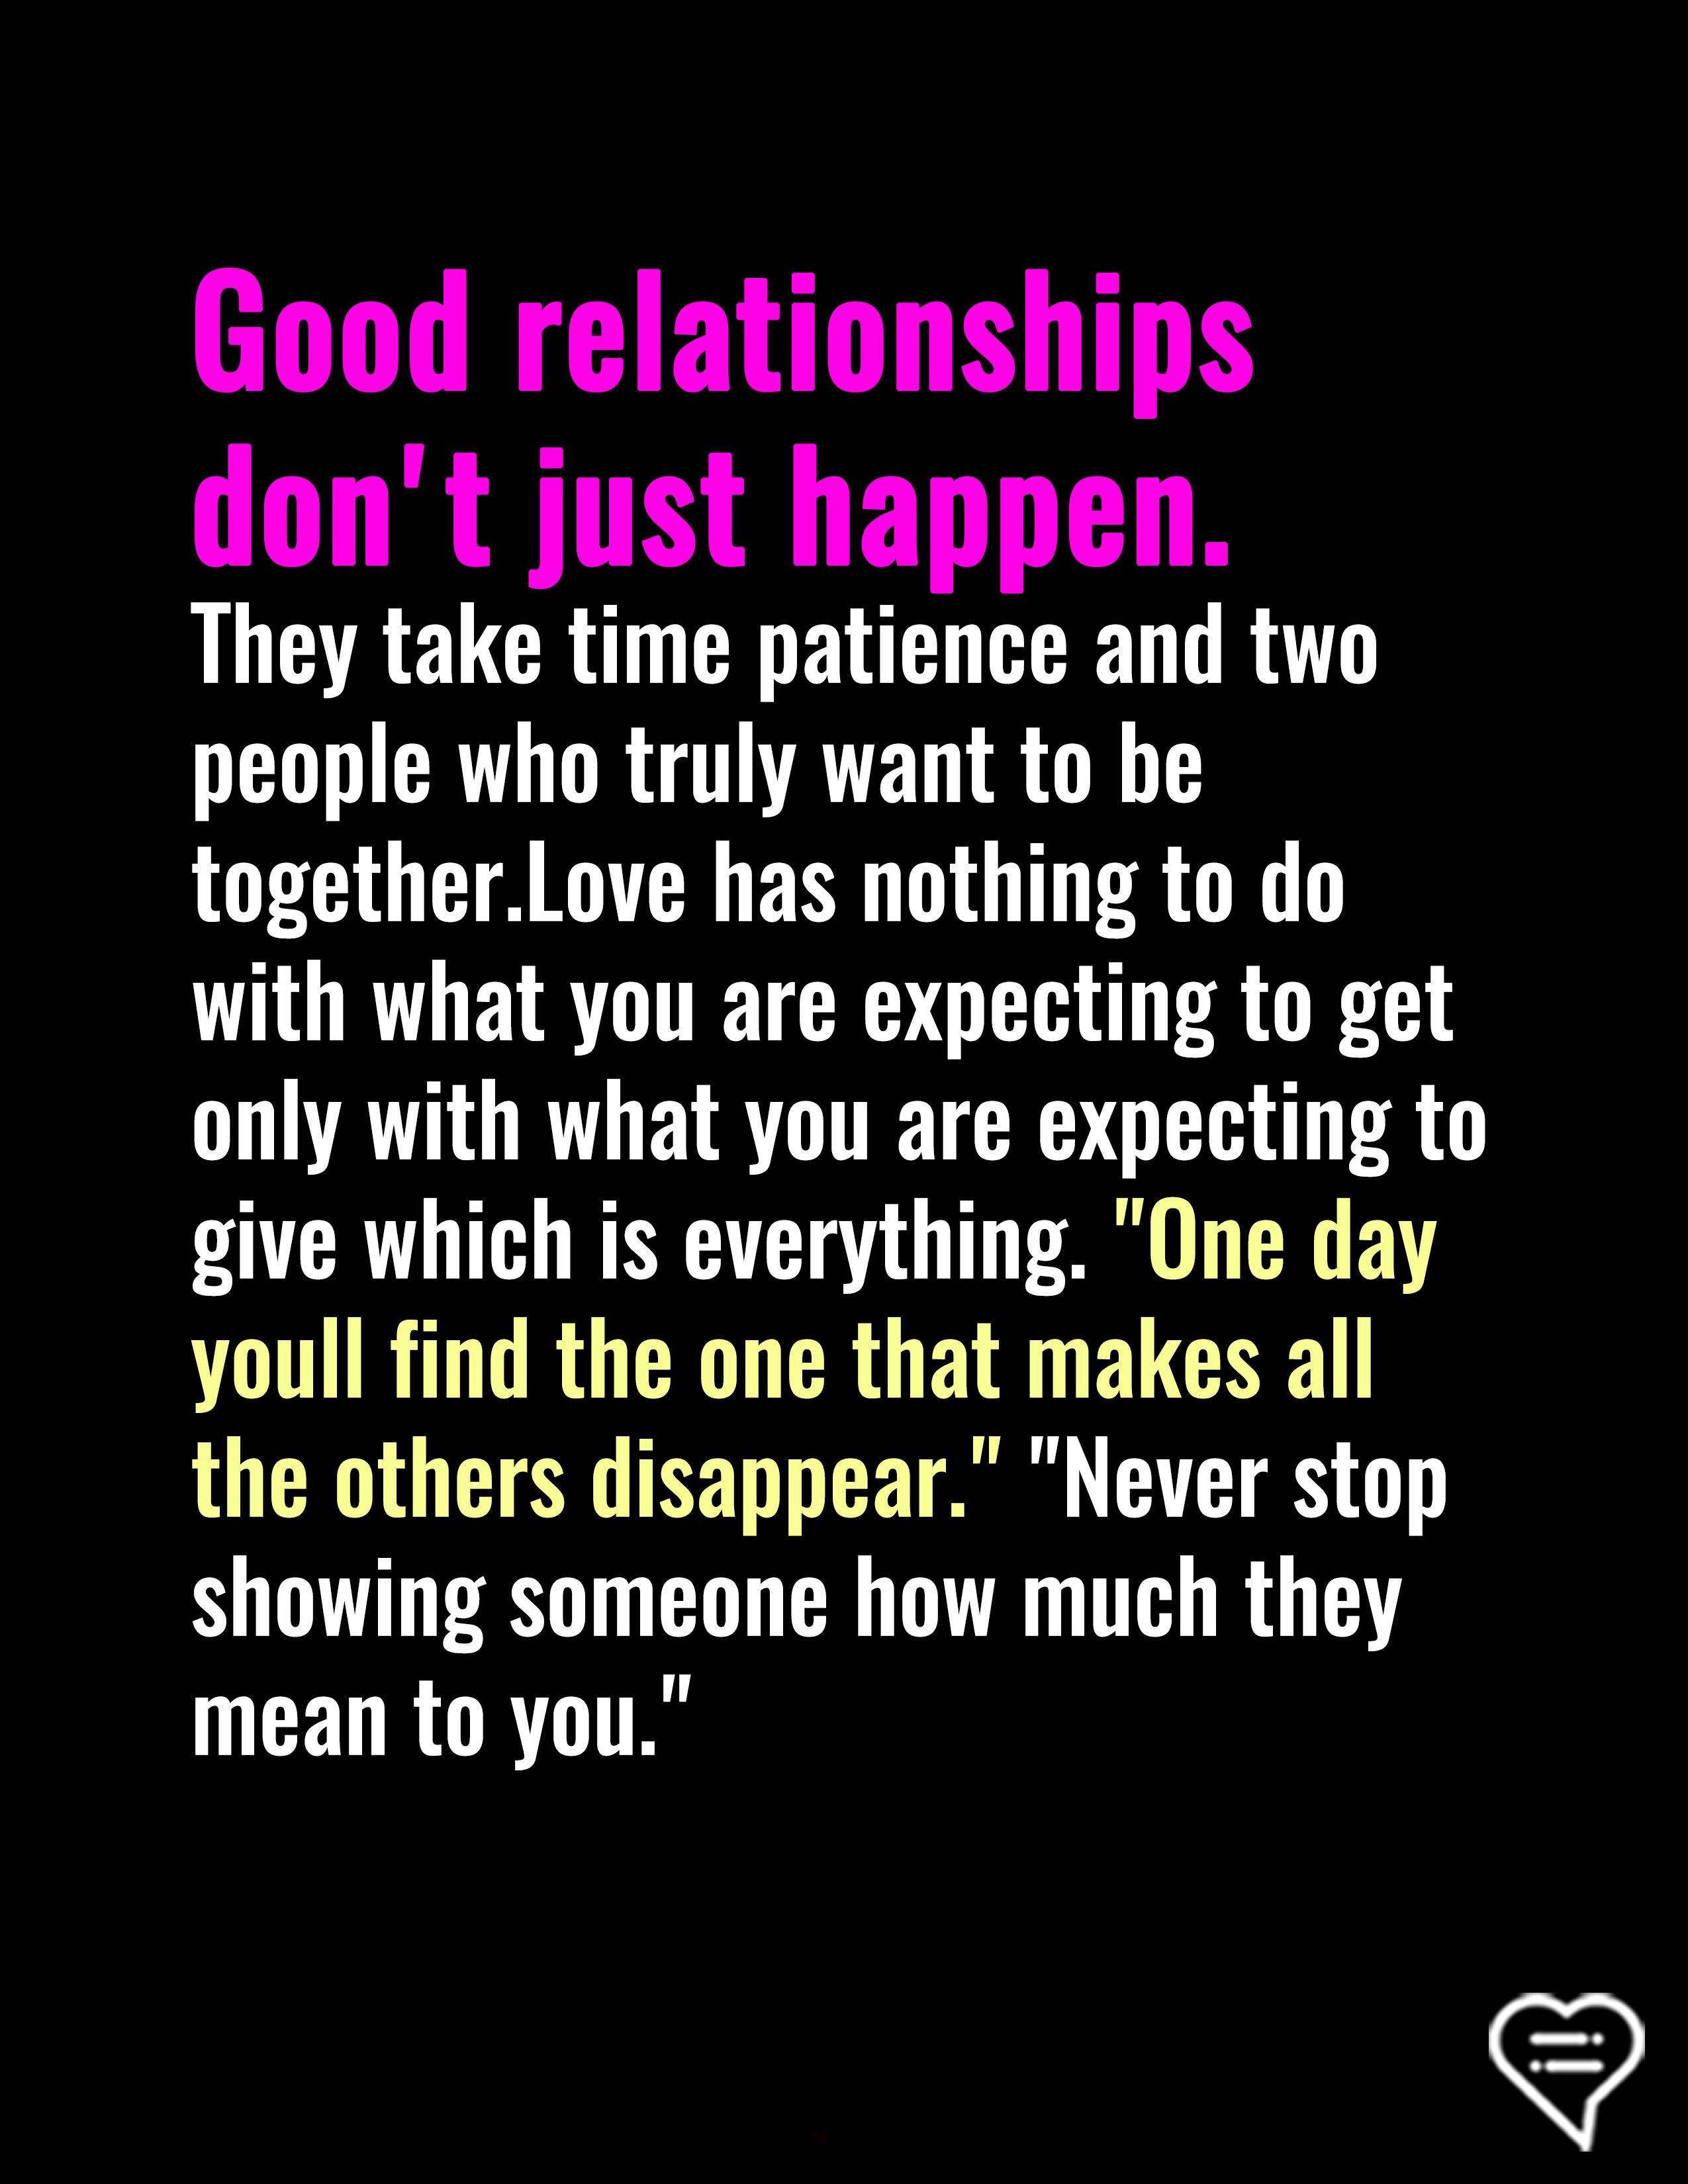 Relationship Quotes Meaning In Hindi